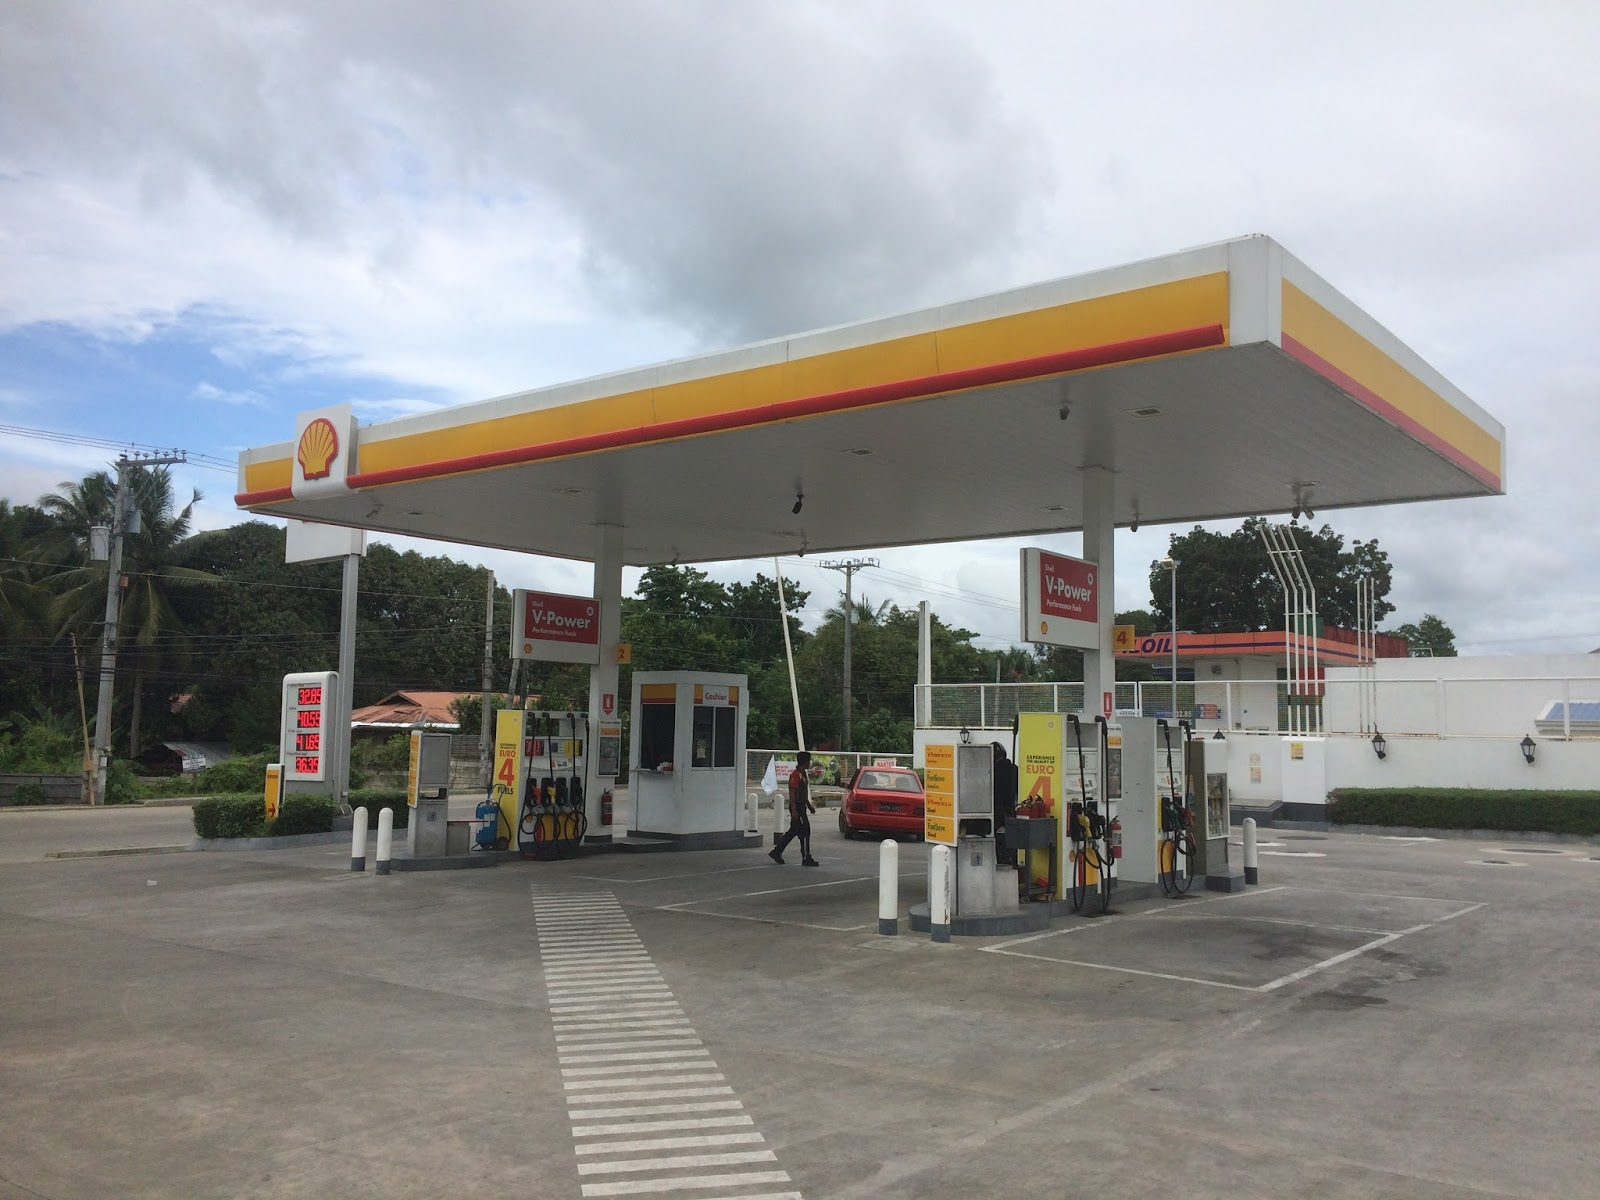 The Closest Shell Gas Station To My Location >> The Touristy Toilet Shell Gas Station Tagbilaran City Bohol